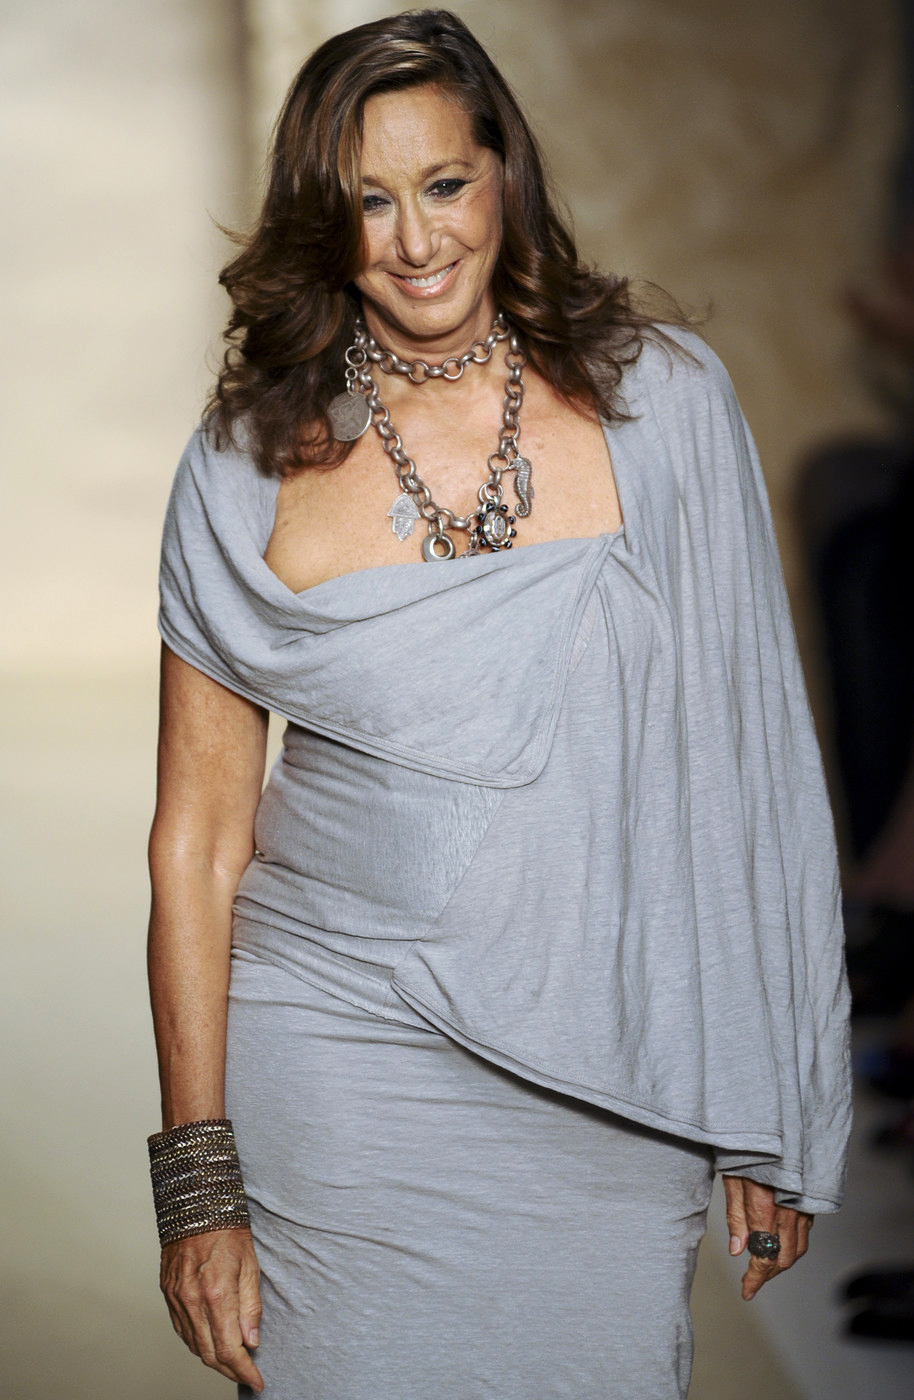 Donna Karan steps down from Donna Karan International / fashion news / via fashioned by love